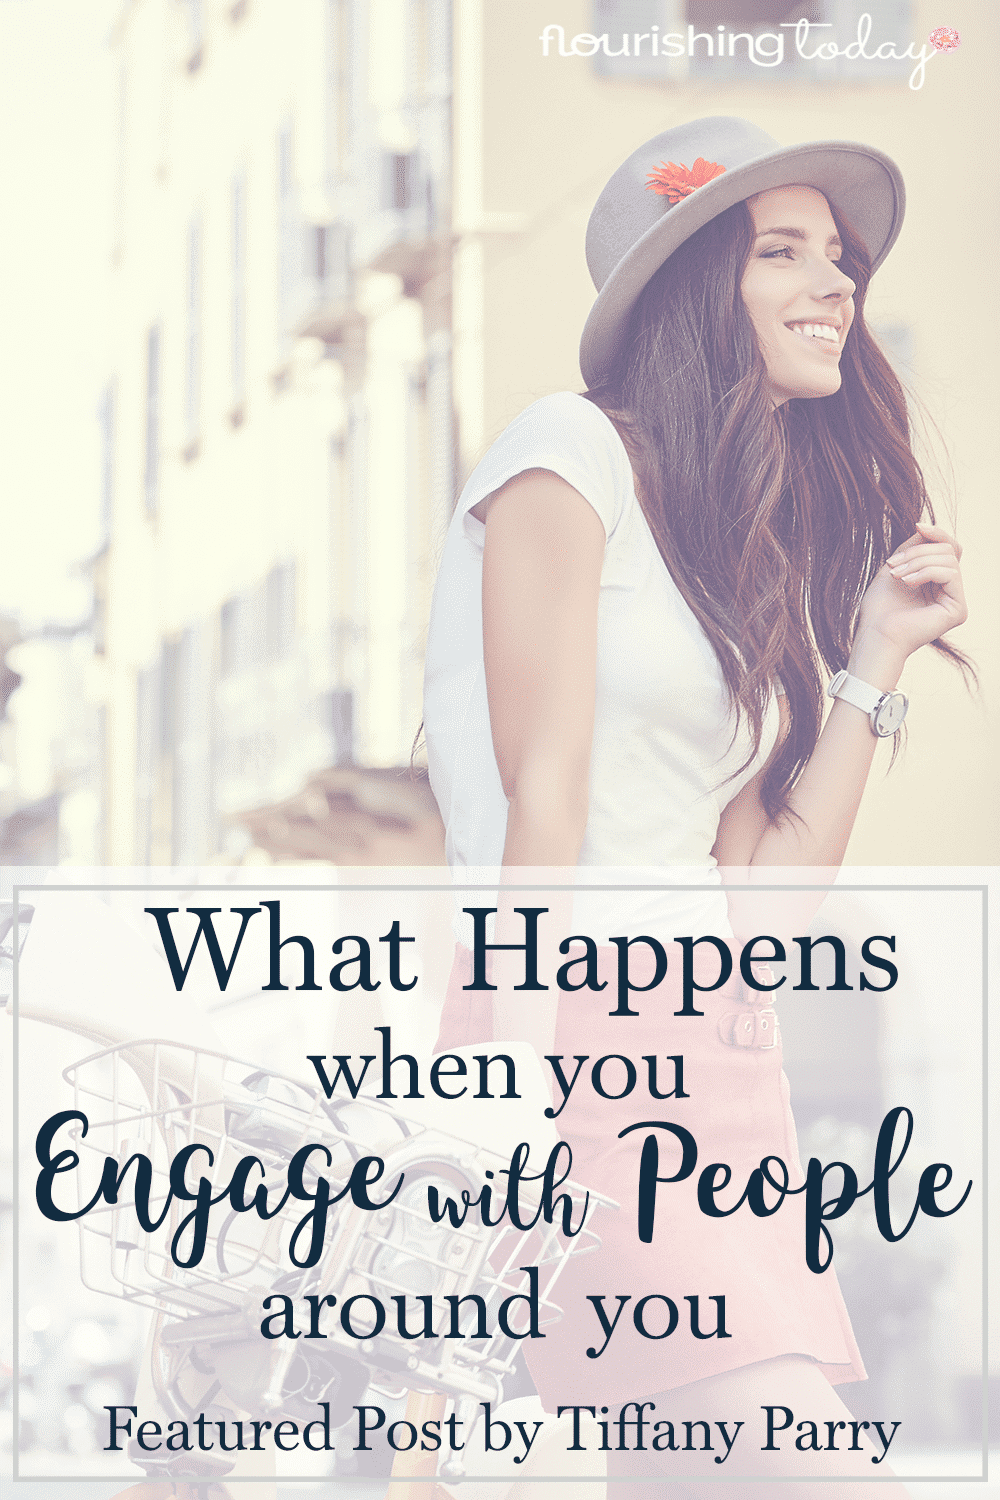 Do you engage with people around you? A simply hello can have a huge impact. Here's what happens when you look at people around you.